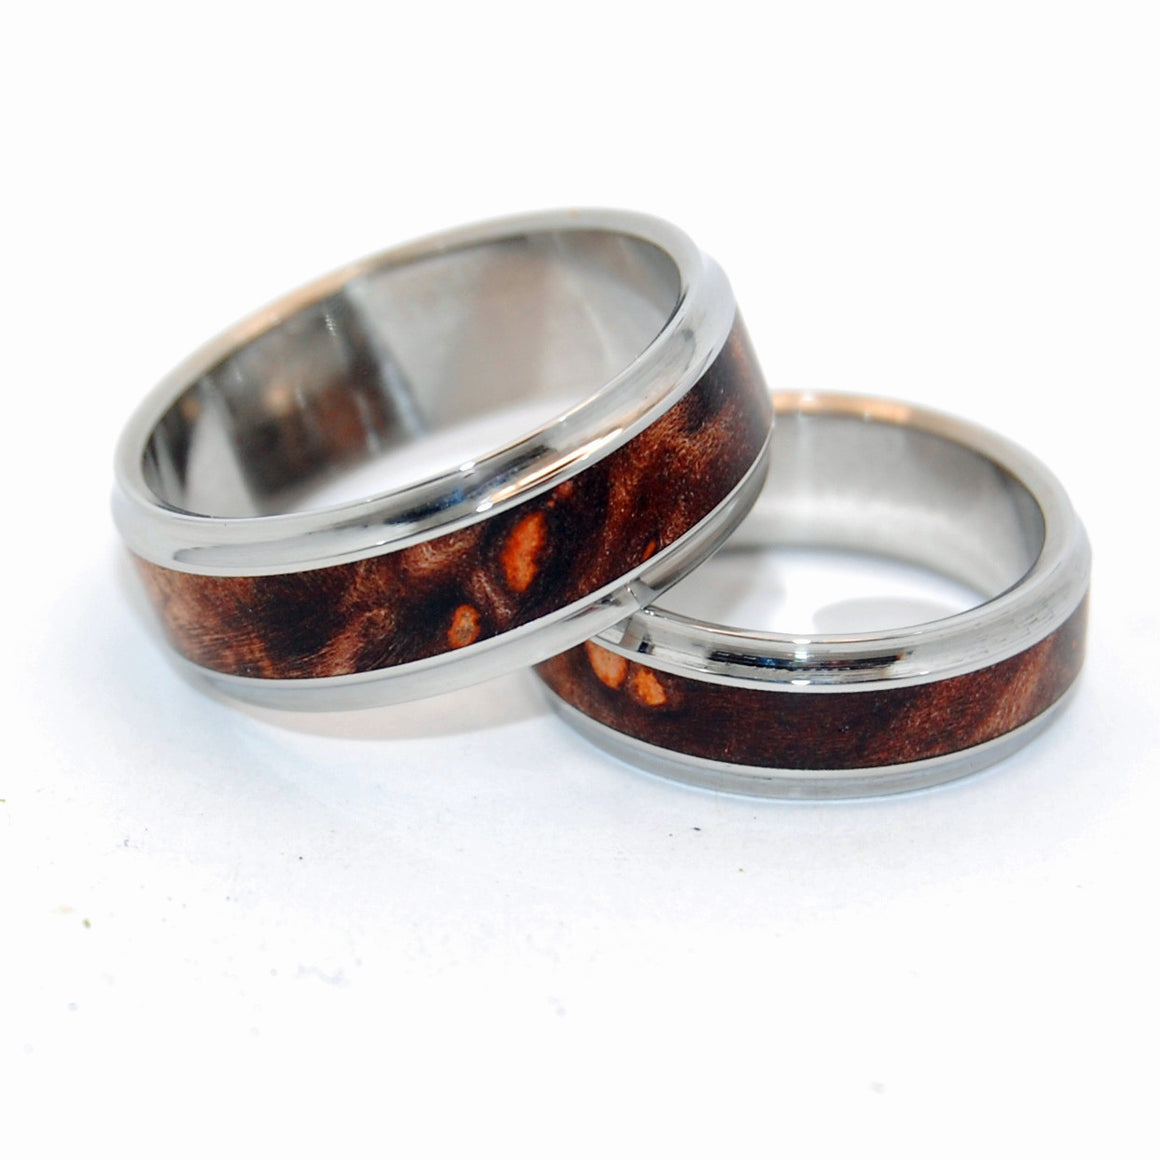 WINDHAM | Dark Maple Wood & Steel Wedding Rings - Unique Wedding Rings set - Minter and Richter Designs